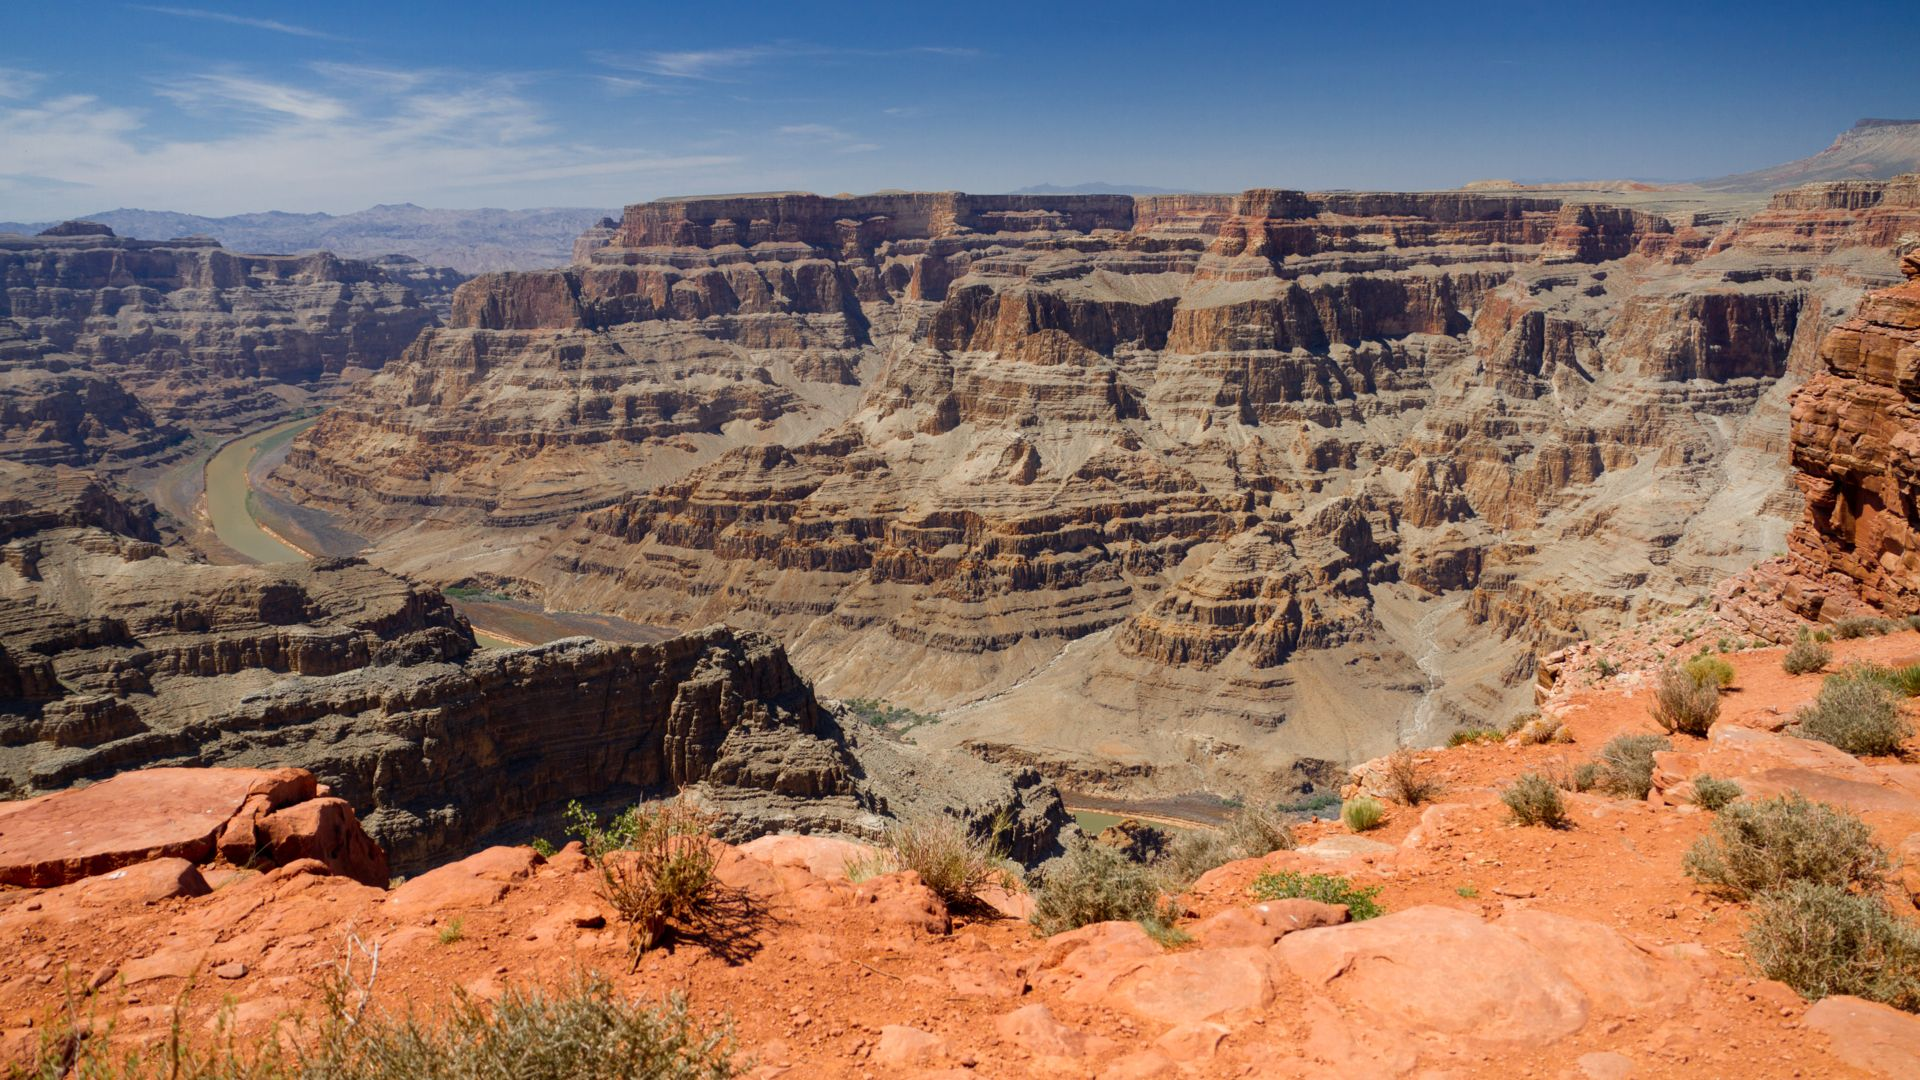 Grand Canyon West view from the Rim